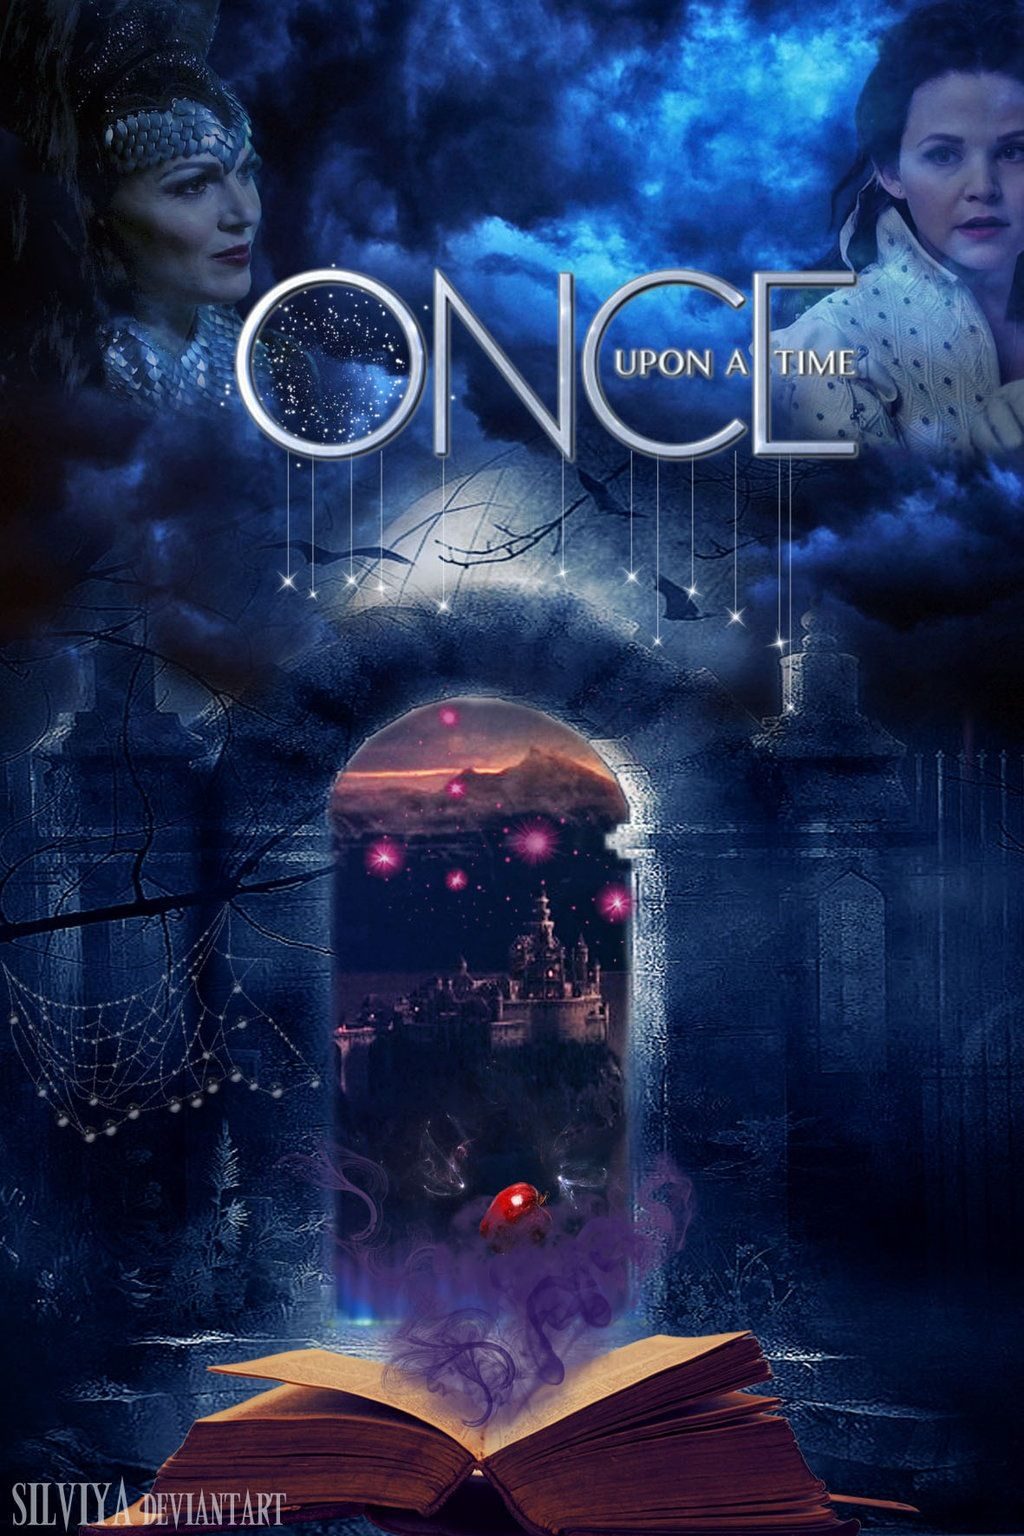 Cool Once Upon A Time Wallpaper Series E Filmes Posteres De Filmes